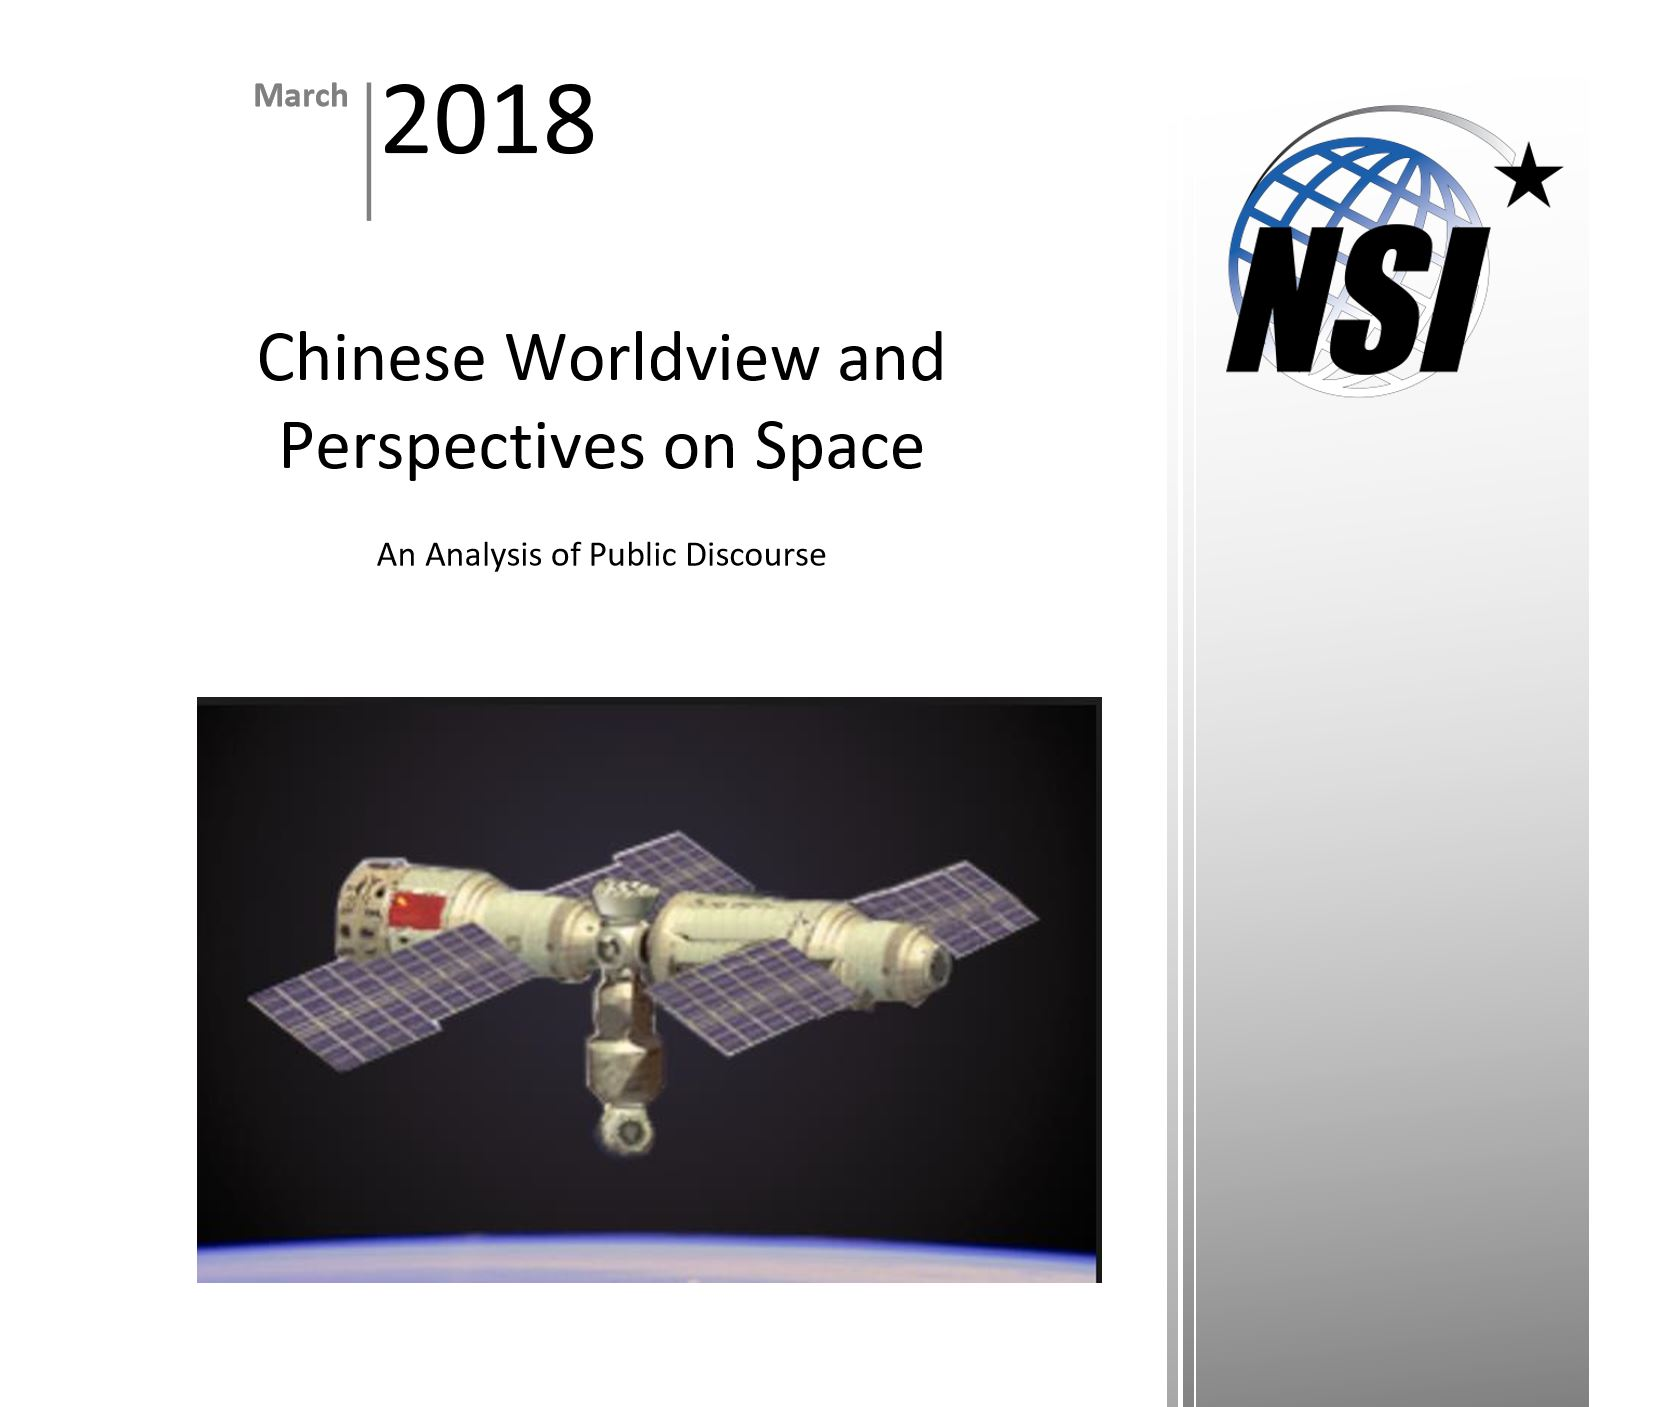 Chinese Worldview and Perspectives on Space | NSI